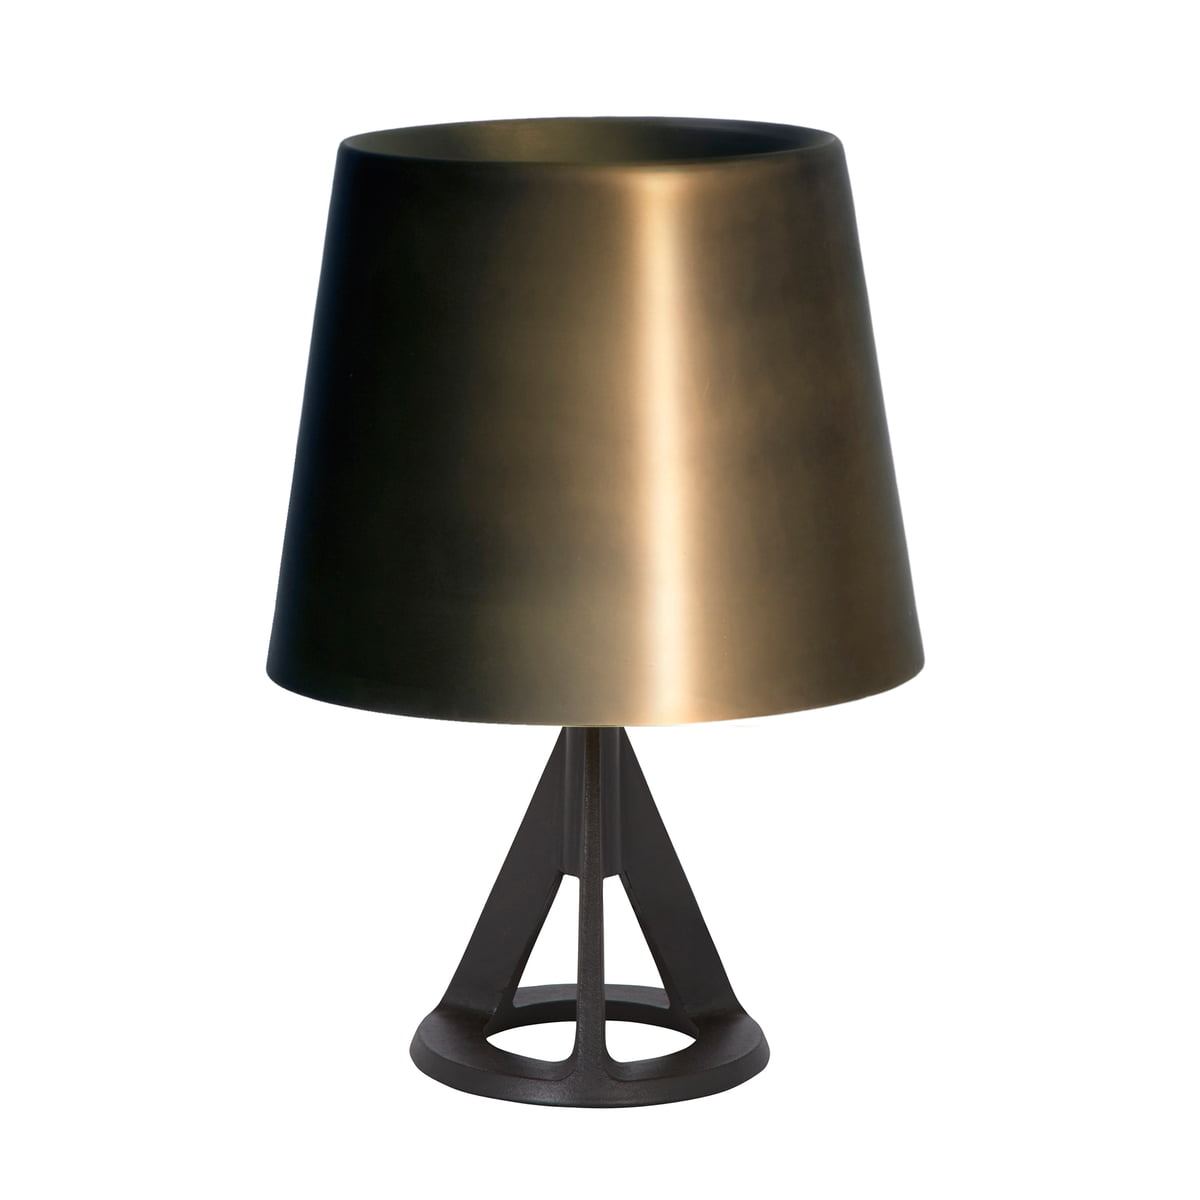 tom dixon lamper good tall pendant light tom dixon black. Black Bedroom Furniture Sets. Home Design Ideas